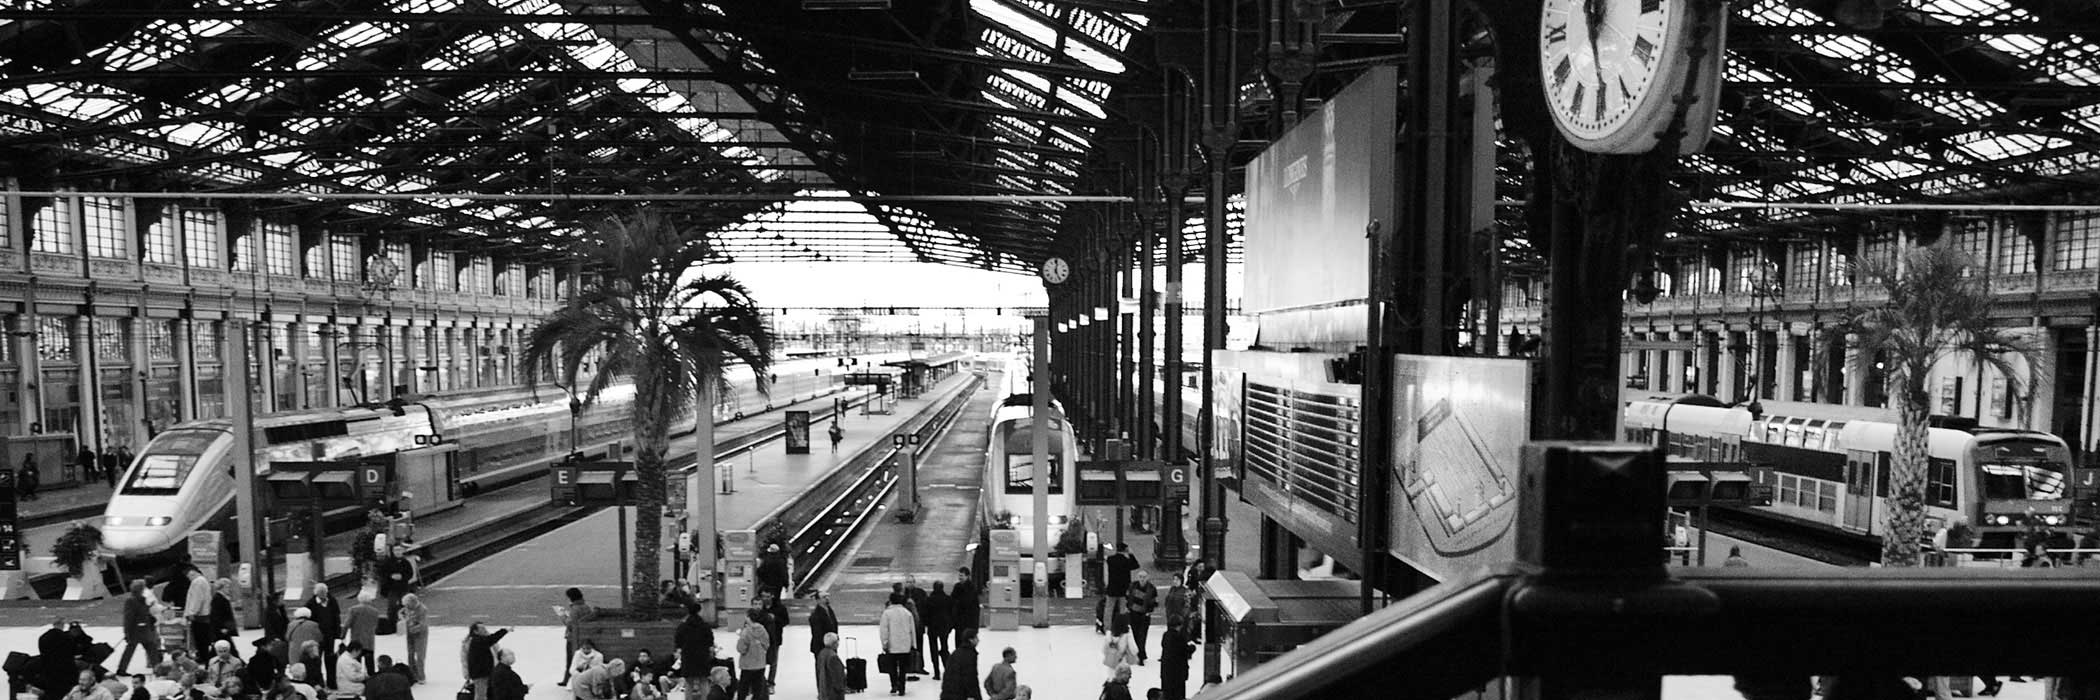 Paris Gare de Lyon train station, France